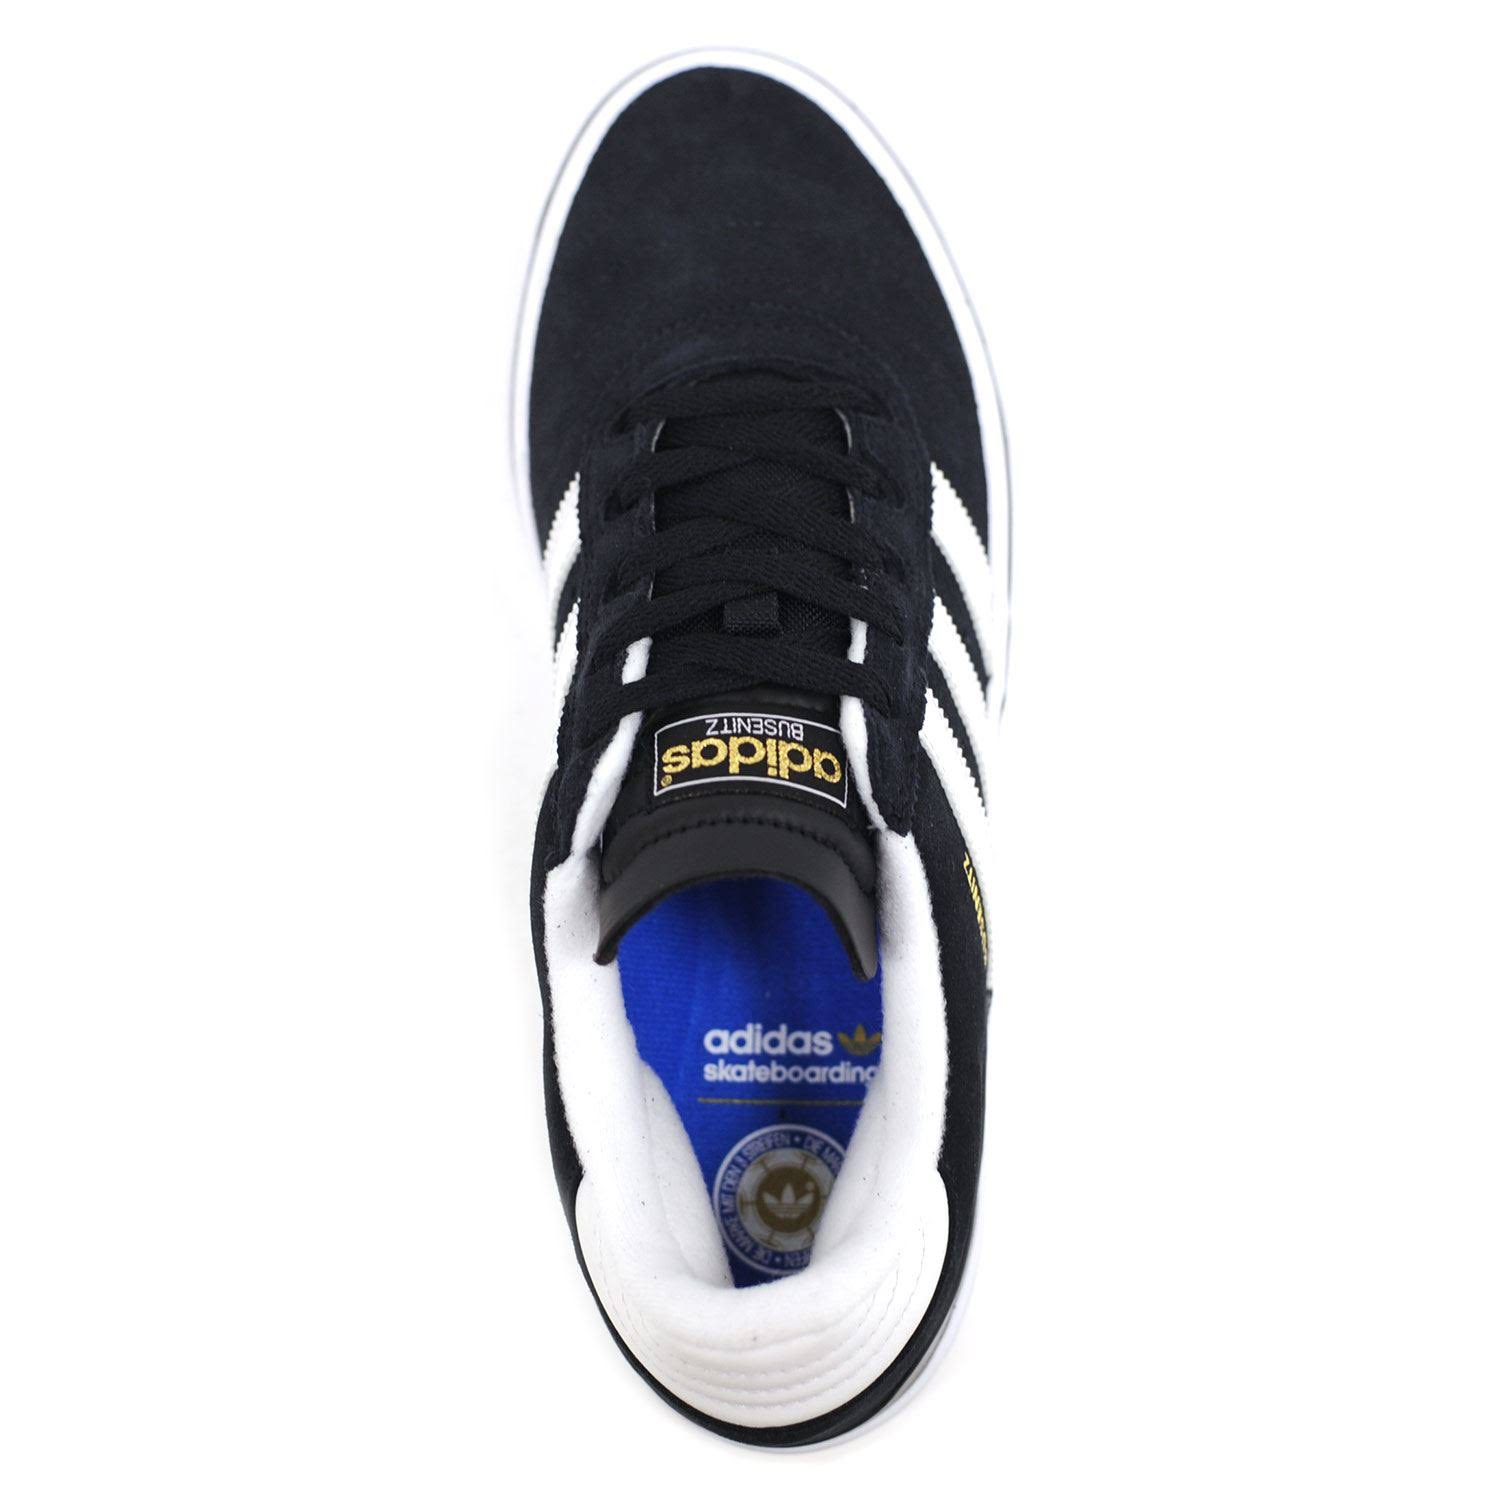 11 Adv Black Busenitz black Vulc 5 white Black Adidas Men's Shoe 86nFxTwqw